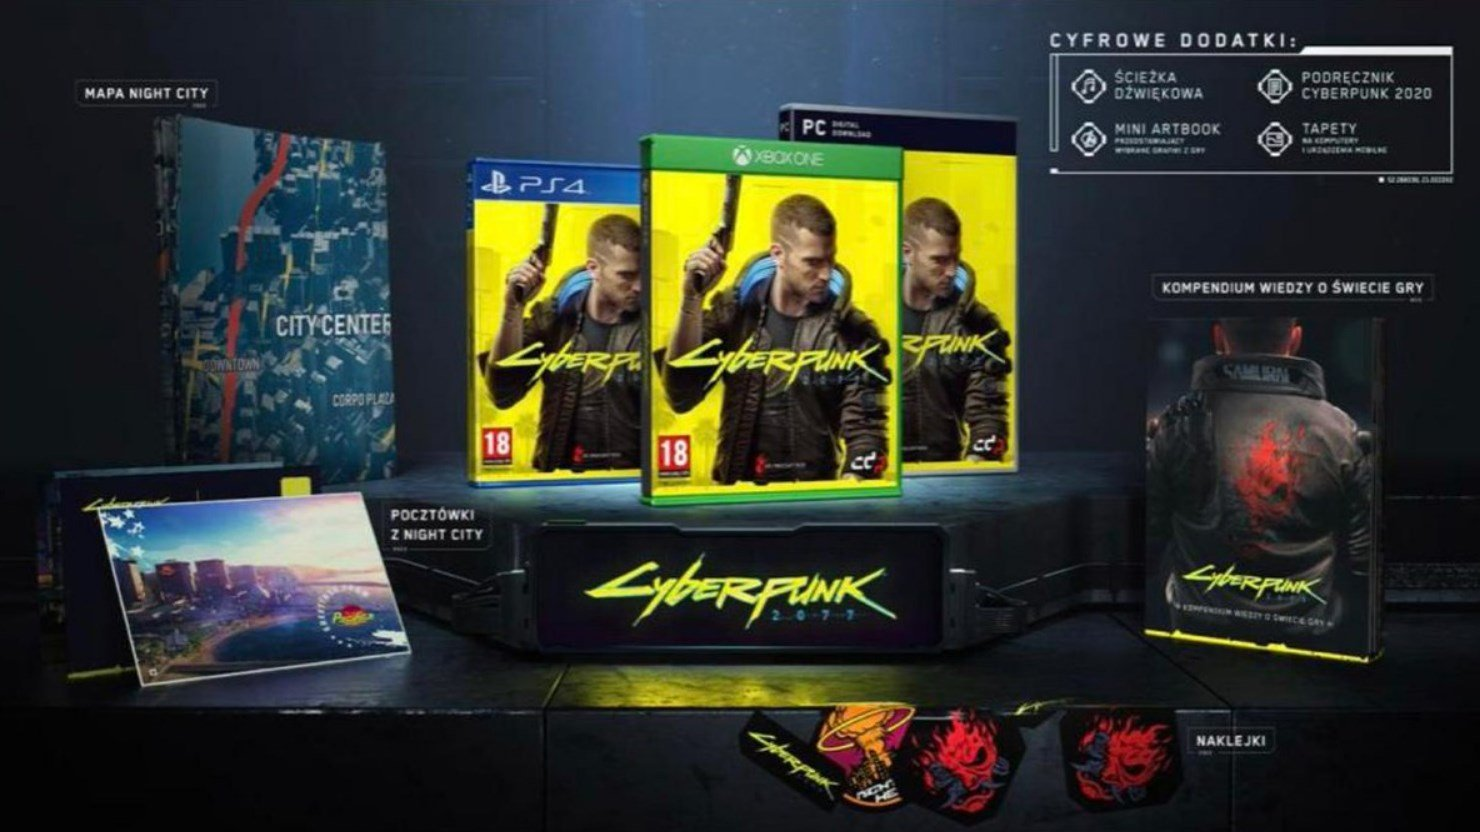 Effect on Sales of Cyberpunk 2077 Copies